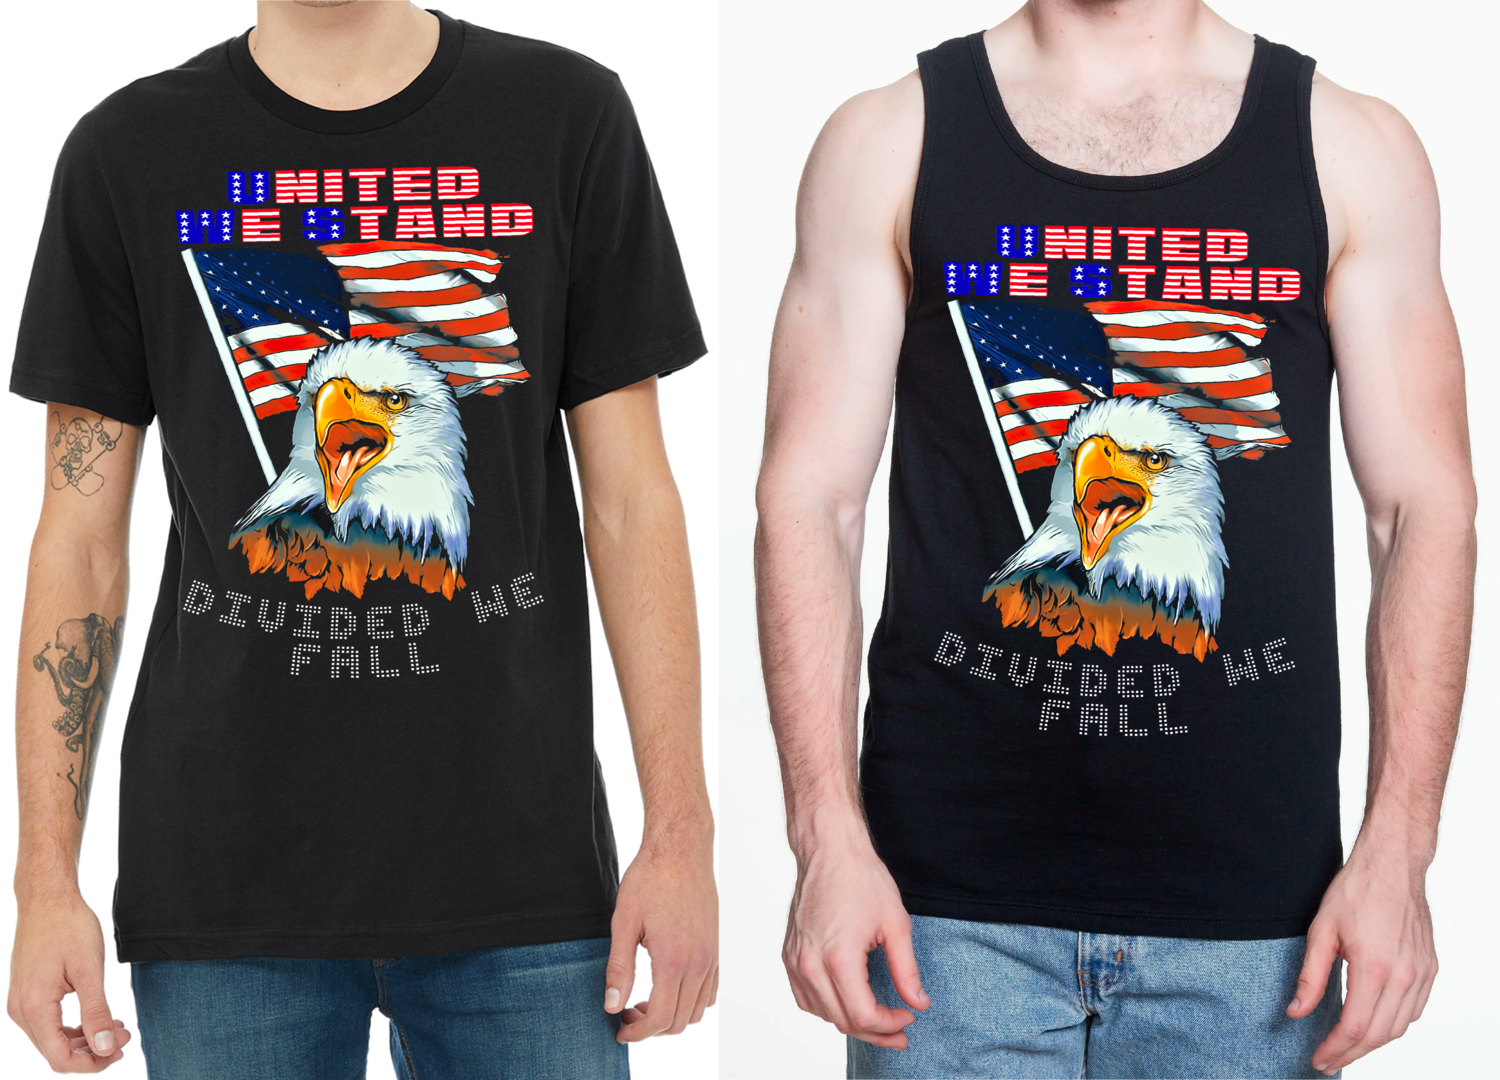 UNITED WE STAND SHIRT FREE SHIPPING